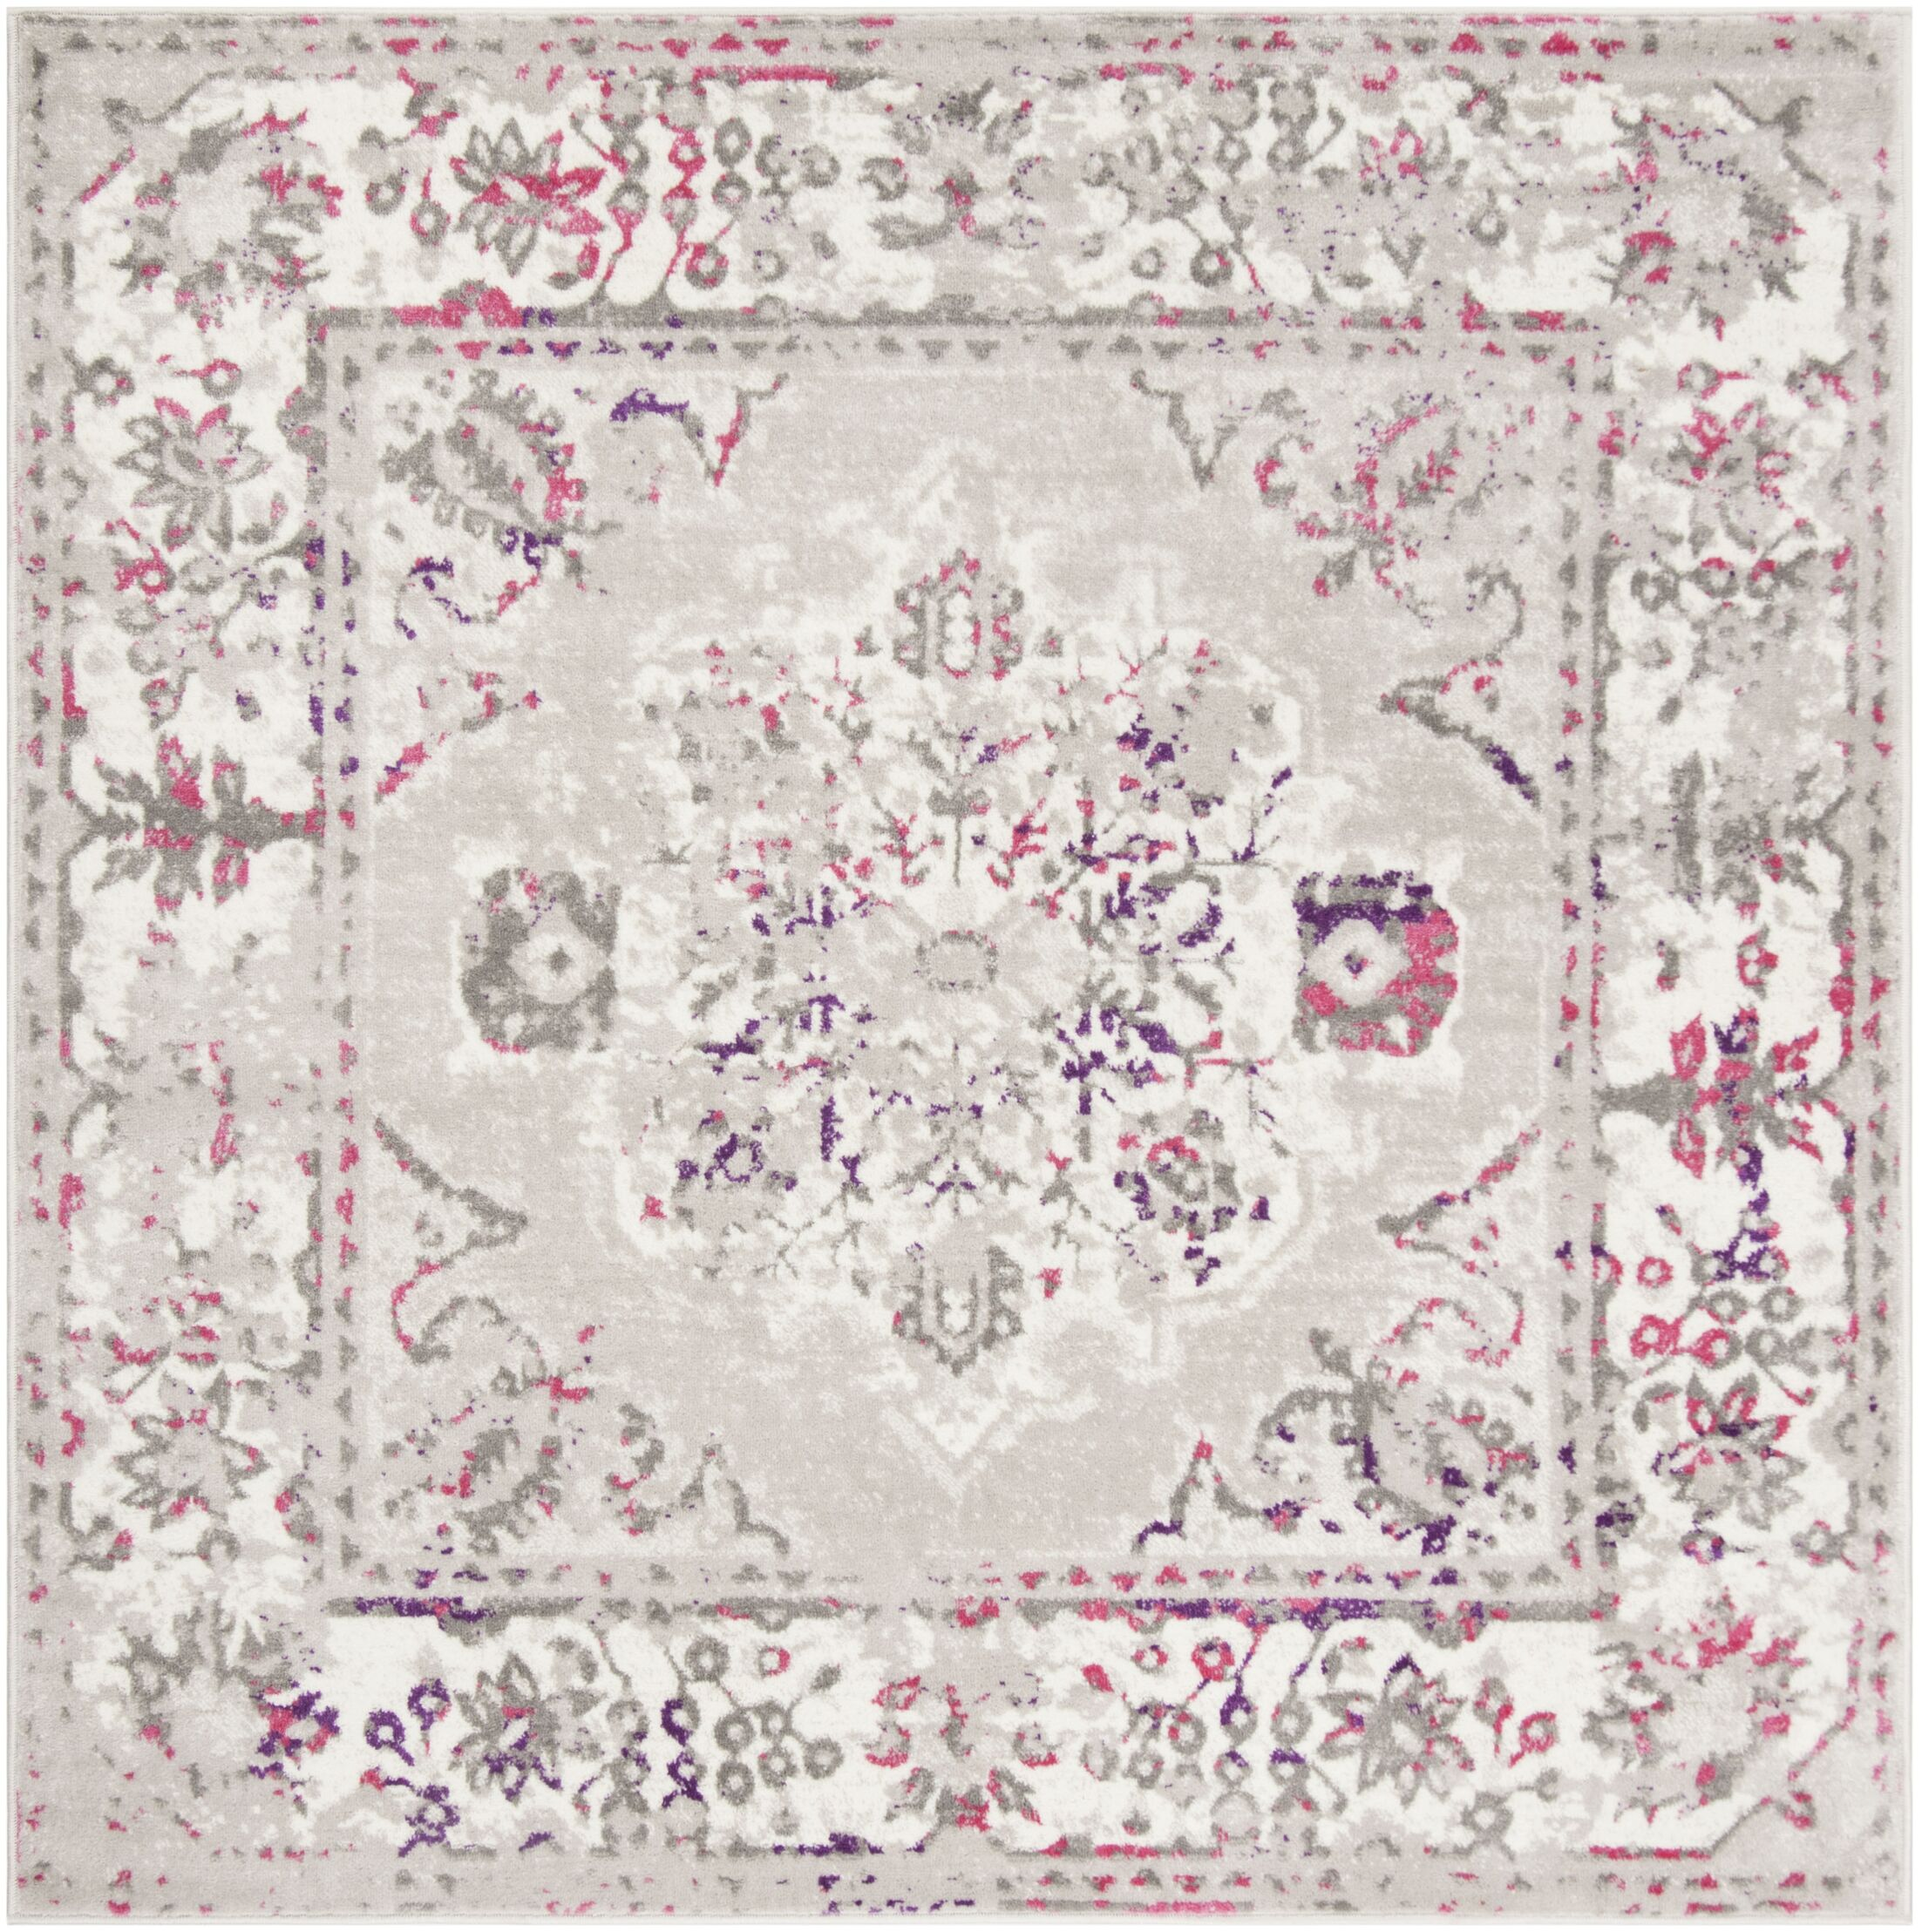 Doty Gray/Pink Area Rug Rug Size: Square 6'7